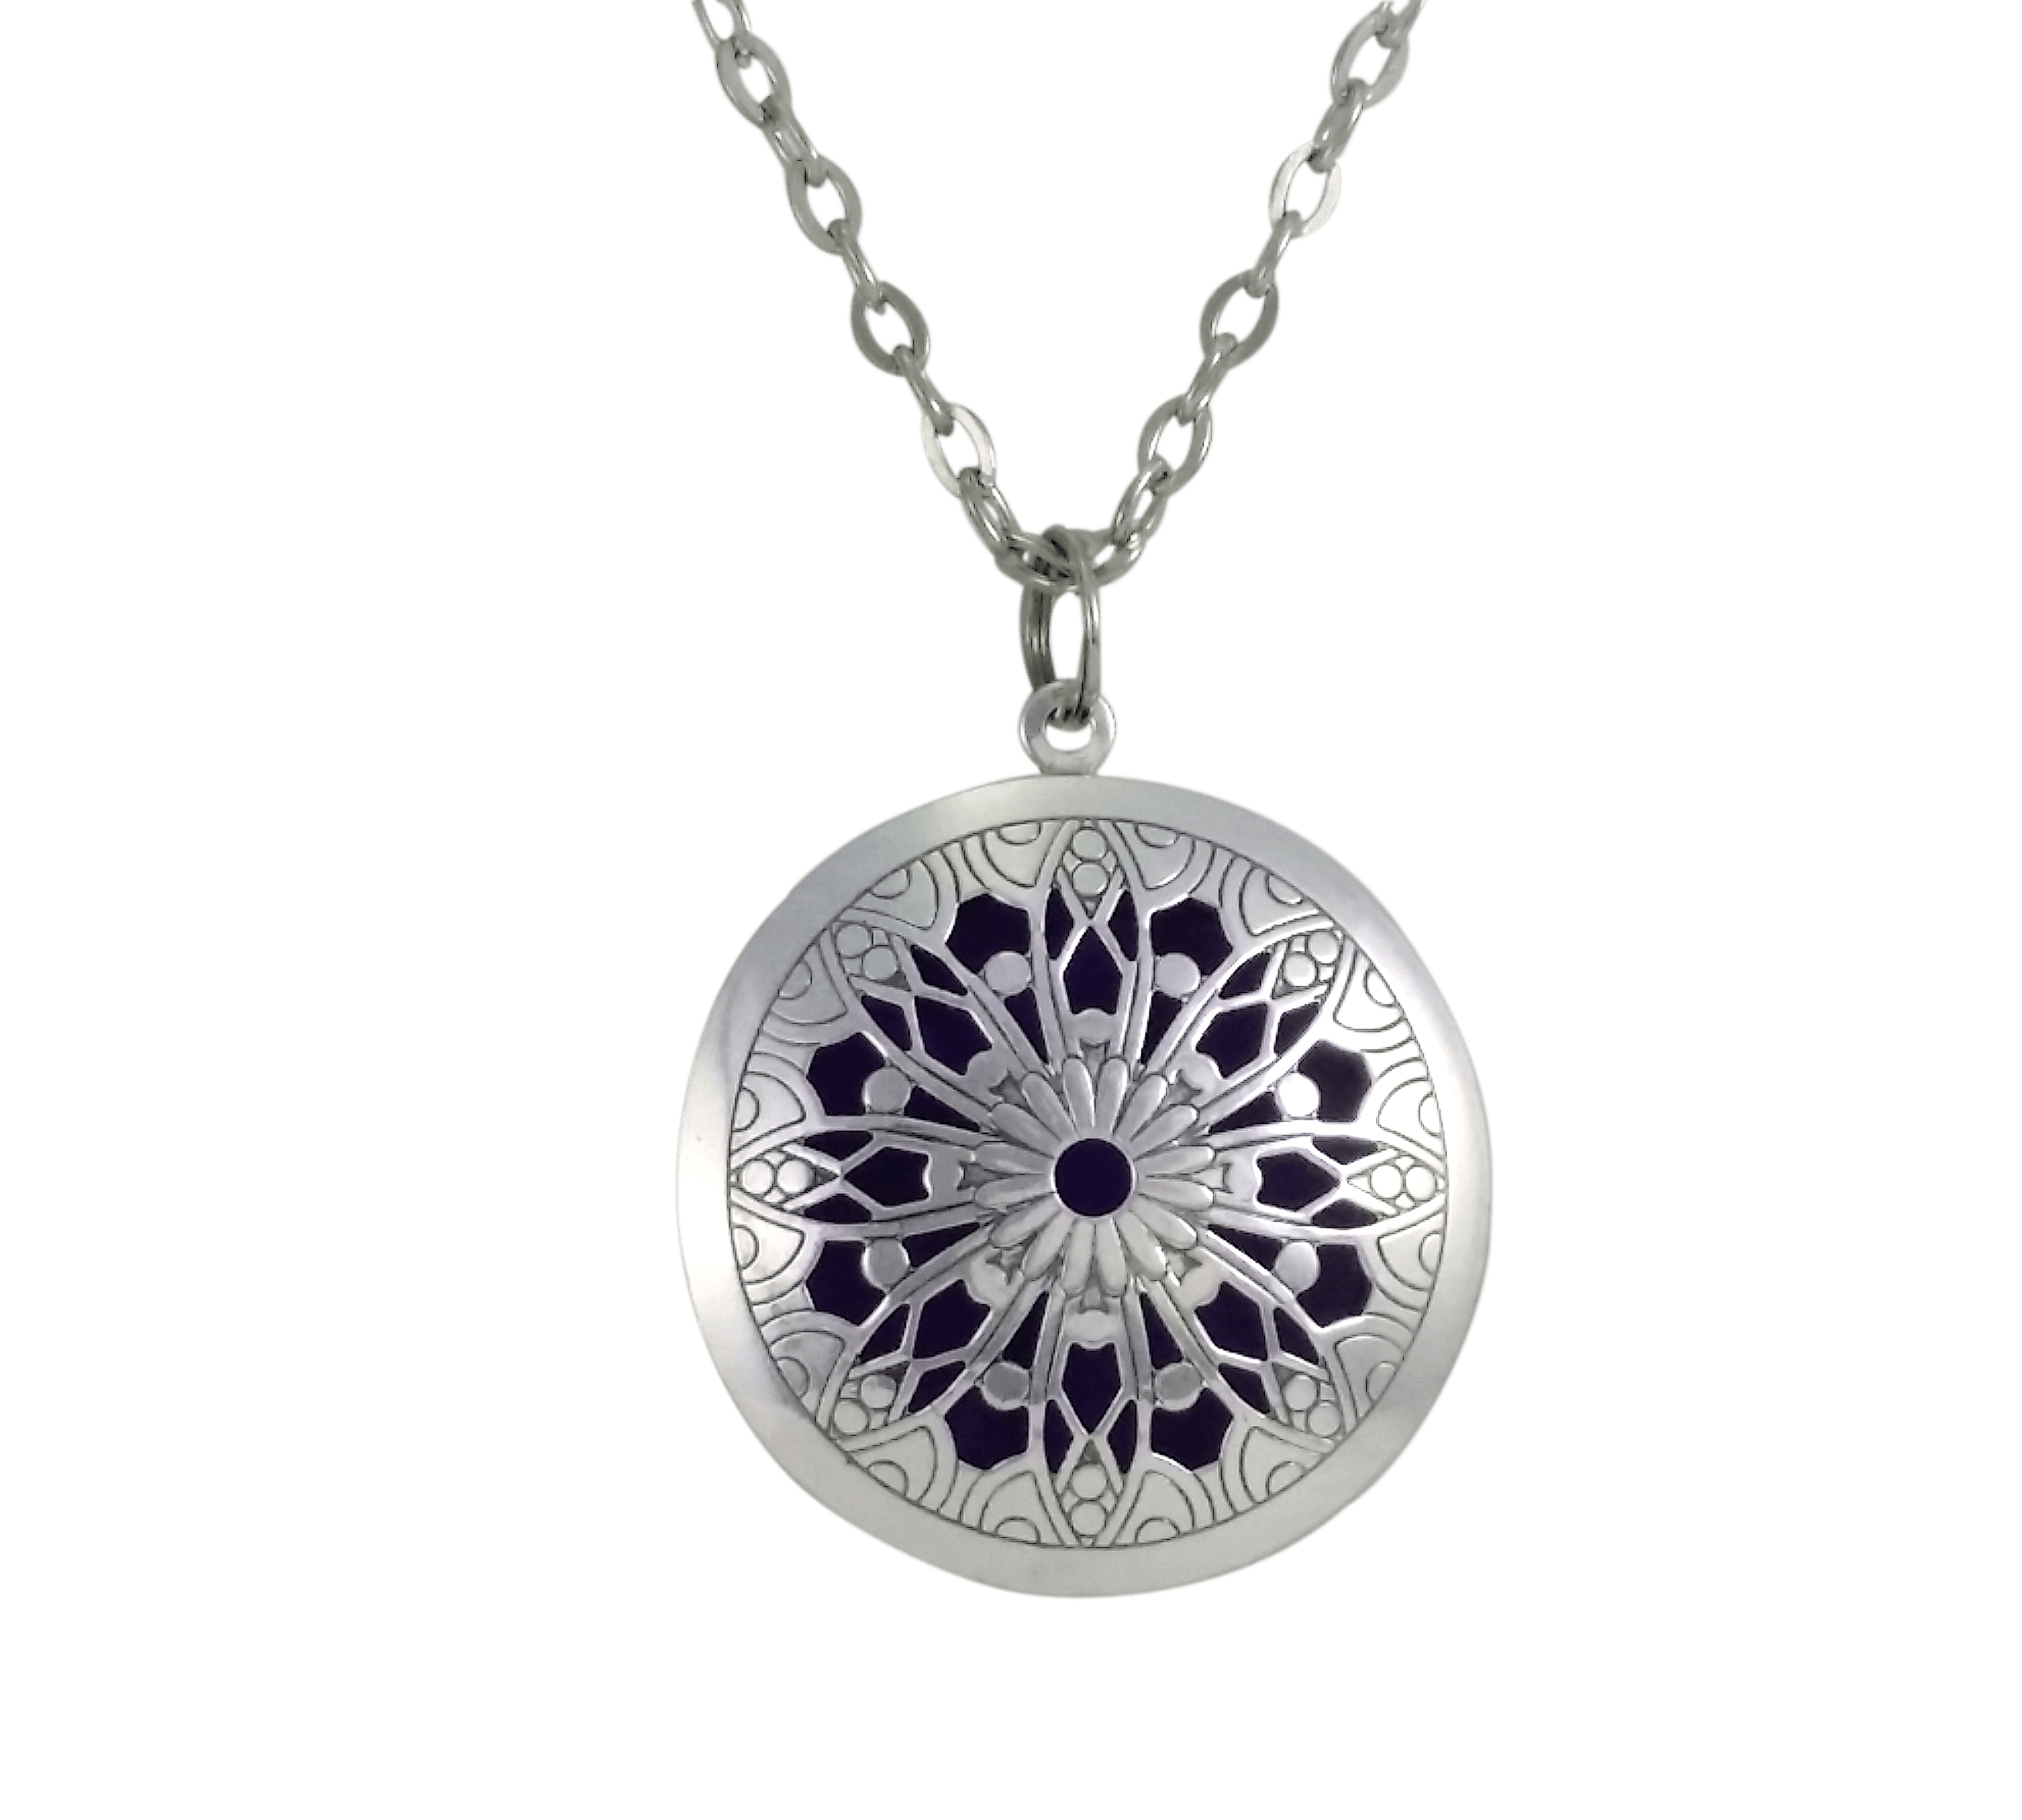 Free Essential Oil Diffuser Necklace